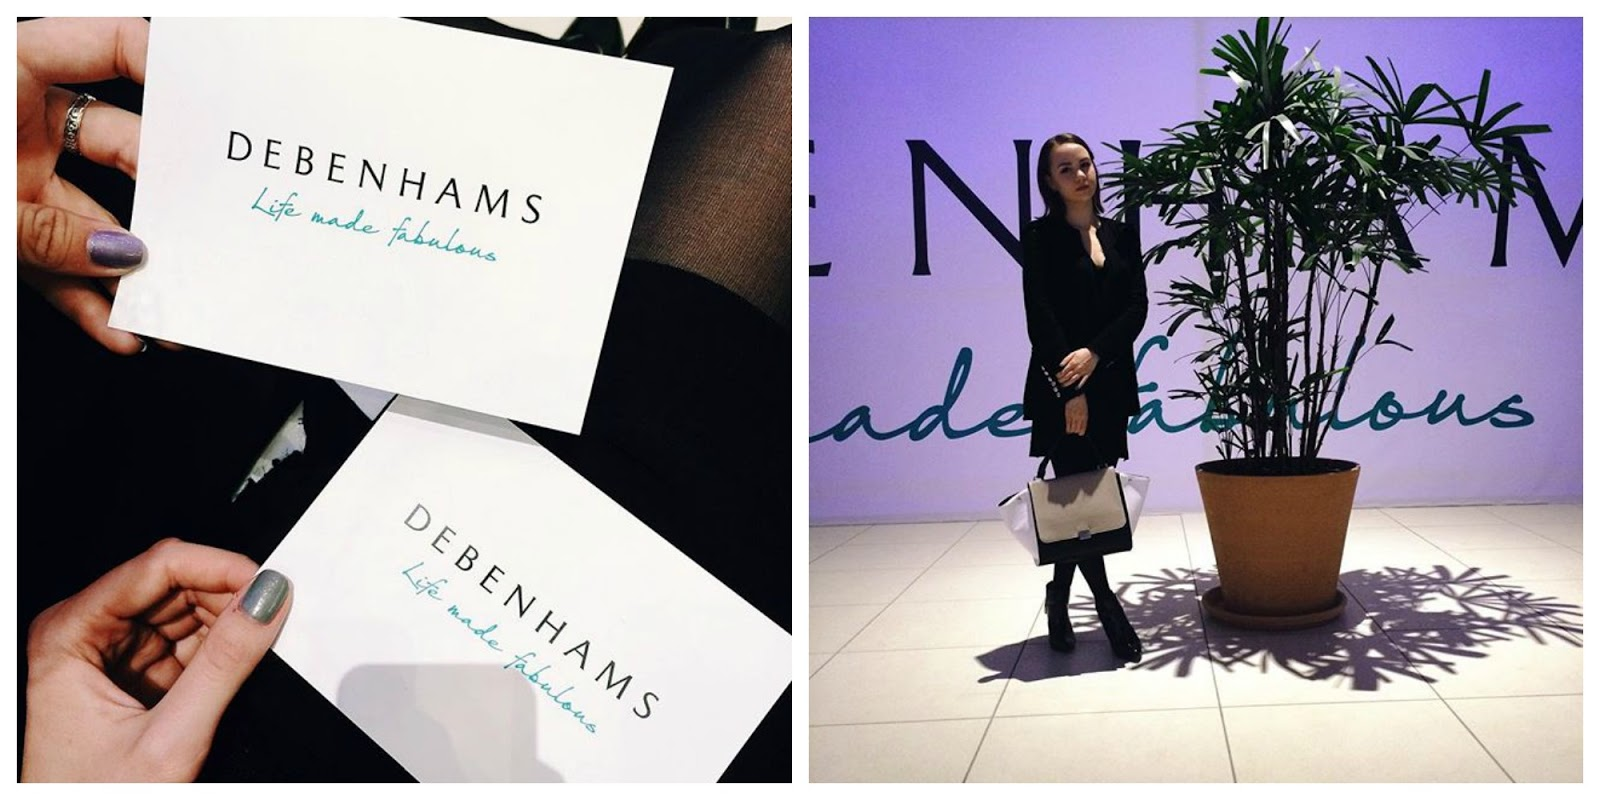 Debenhams opening in Moscow | Alina Ermilova | Fashion blogger